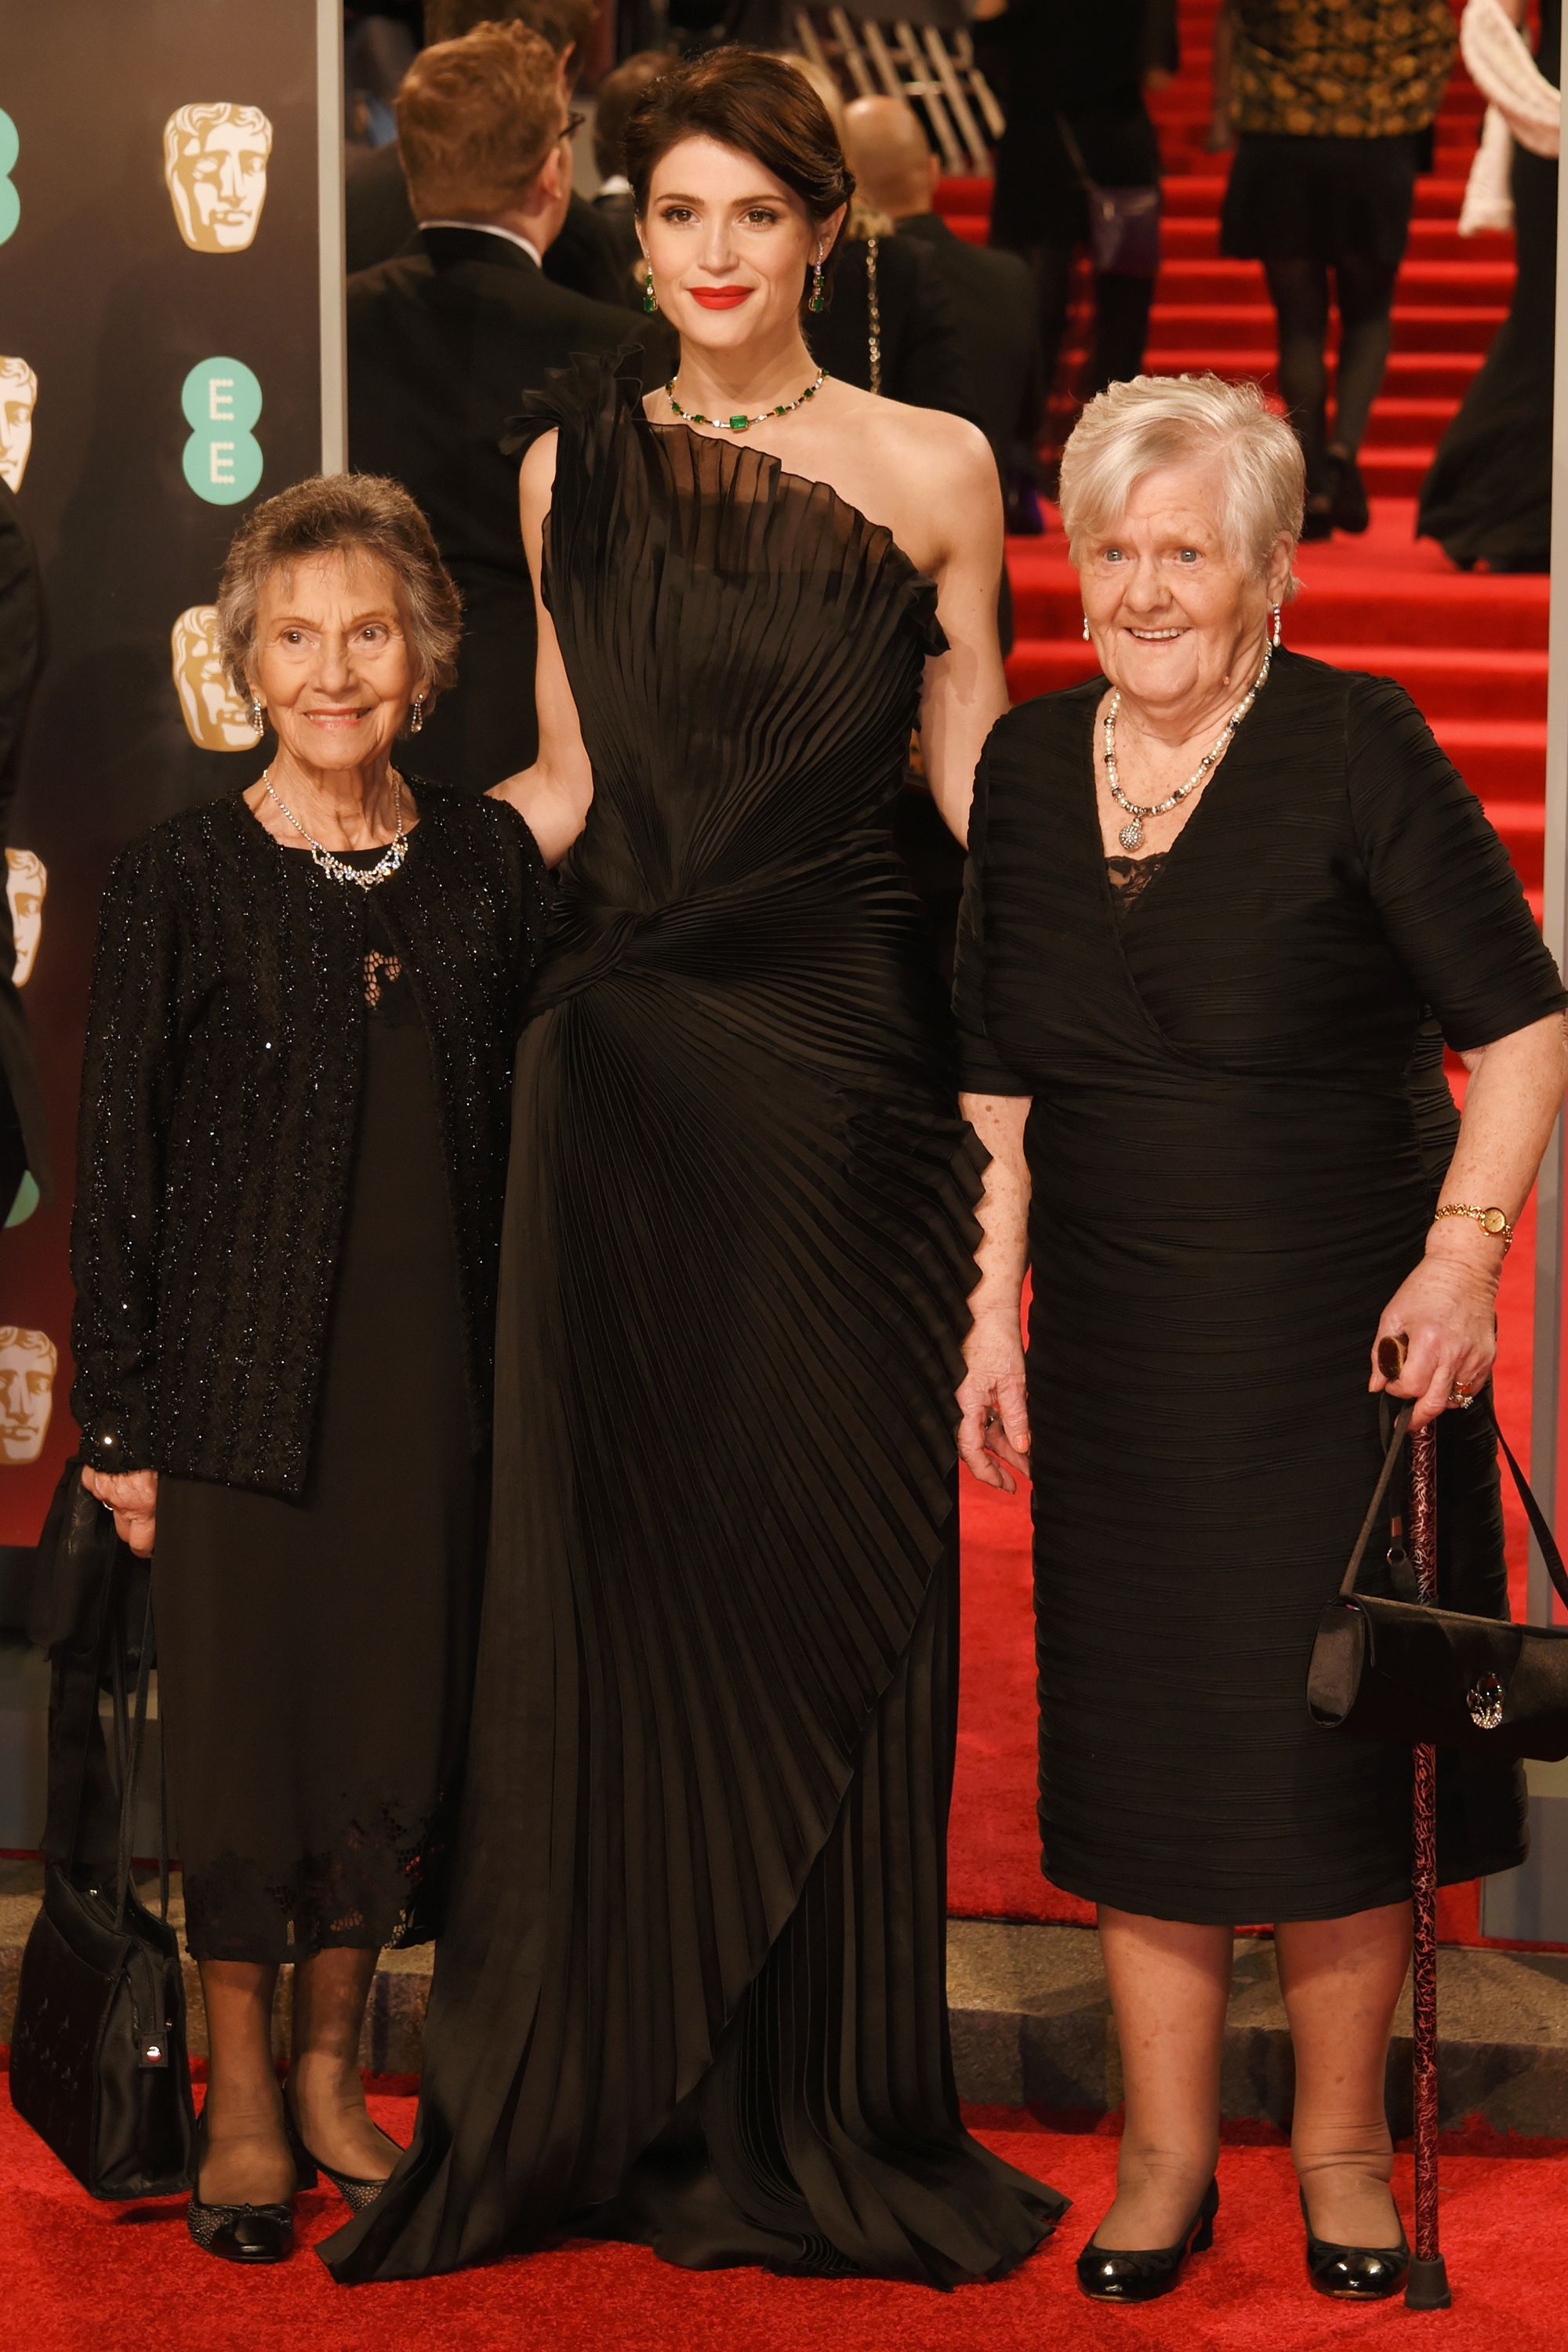 Many stars walked the Baftas red carpet with notable female activists and leaders